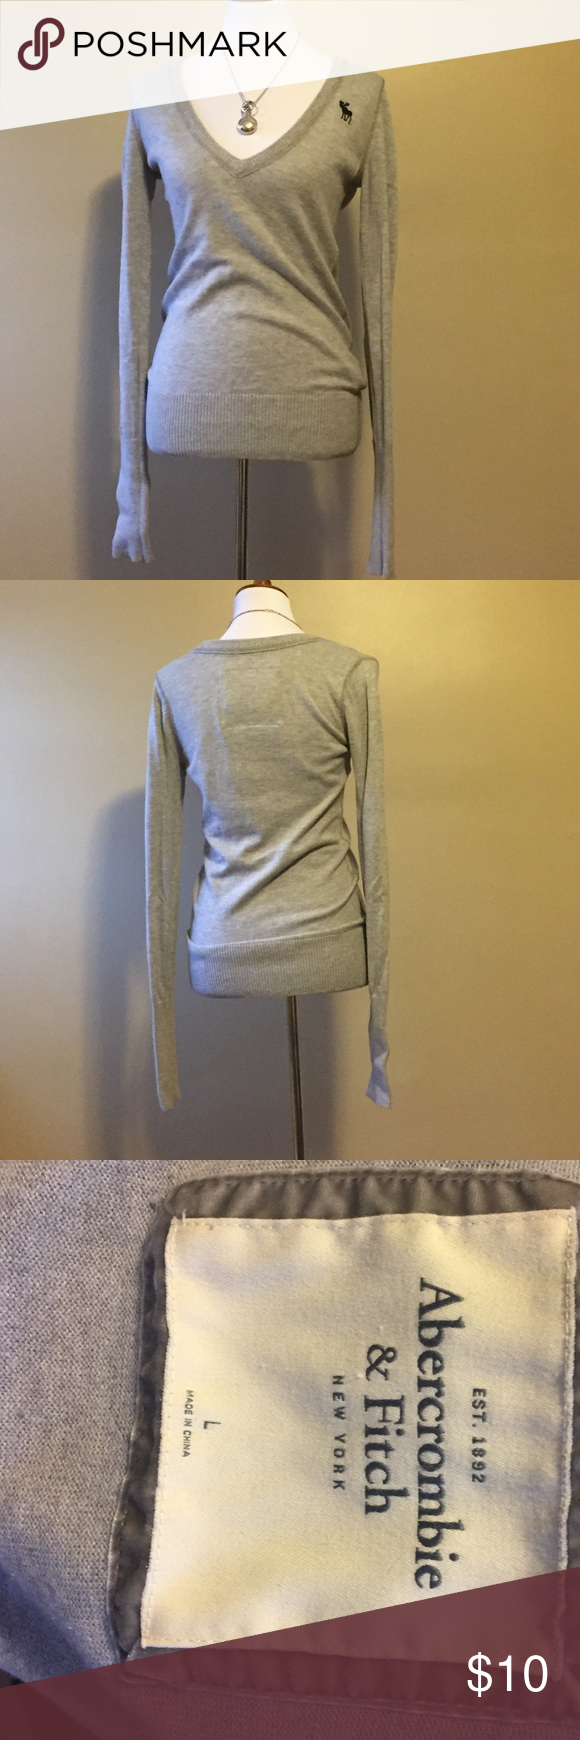 Abercrombie & Fitch Deep V Knit Sweater Abercrombie & Fitch. Size large. Deep V-neck. Long sleeve. Knit. Abercrombie & Fitch Sweaters V-Necks